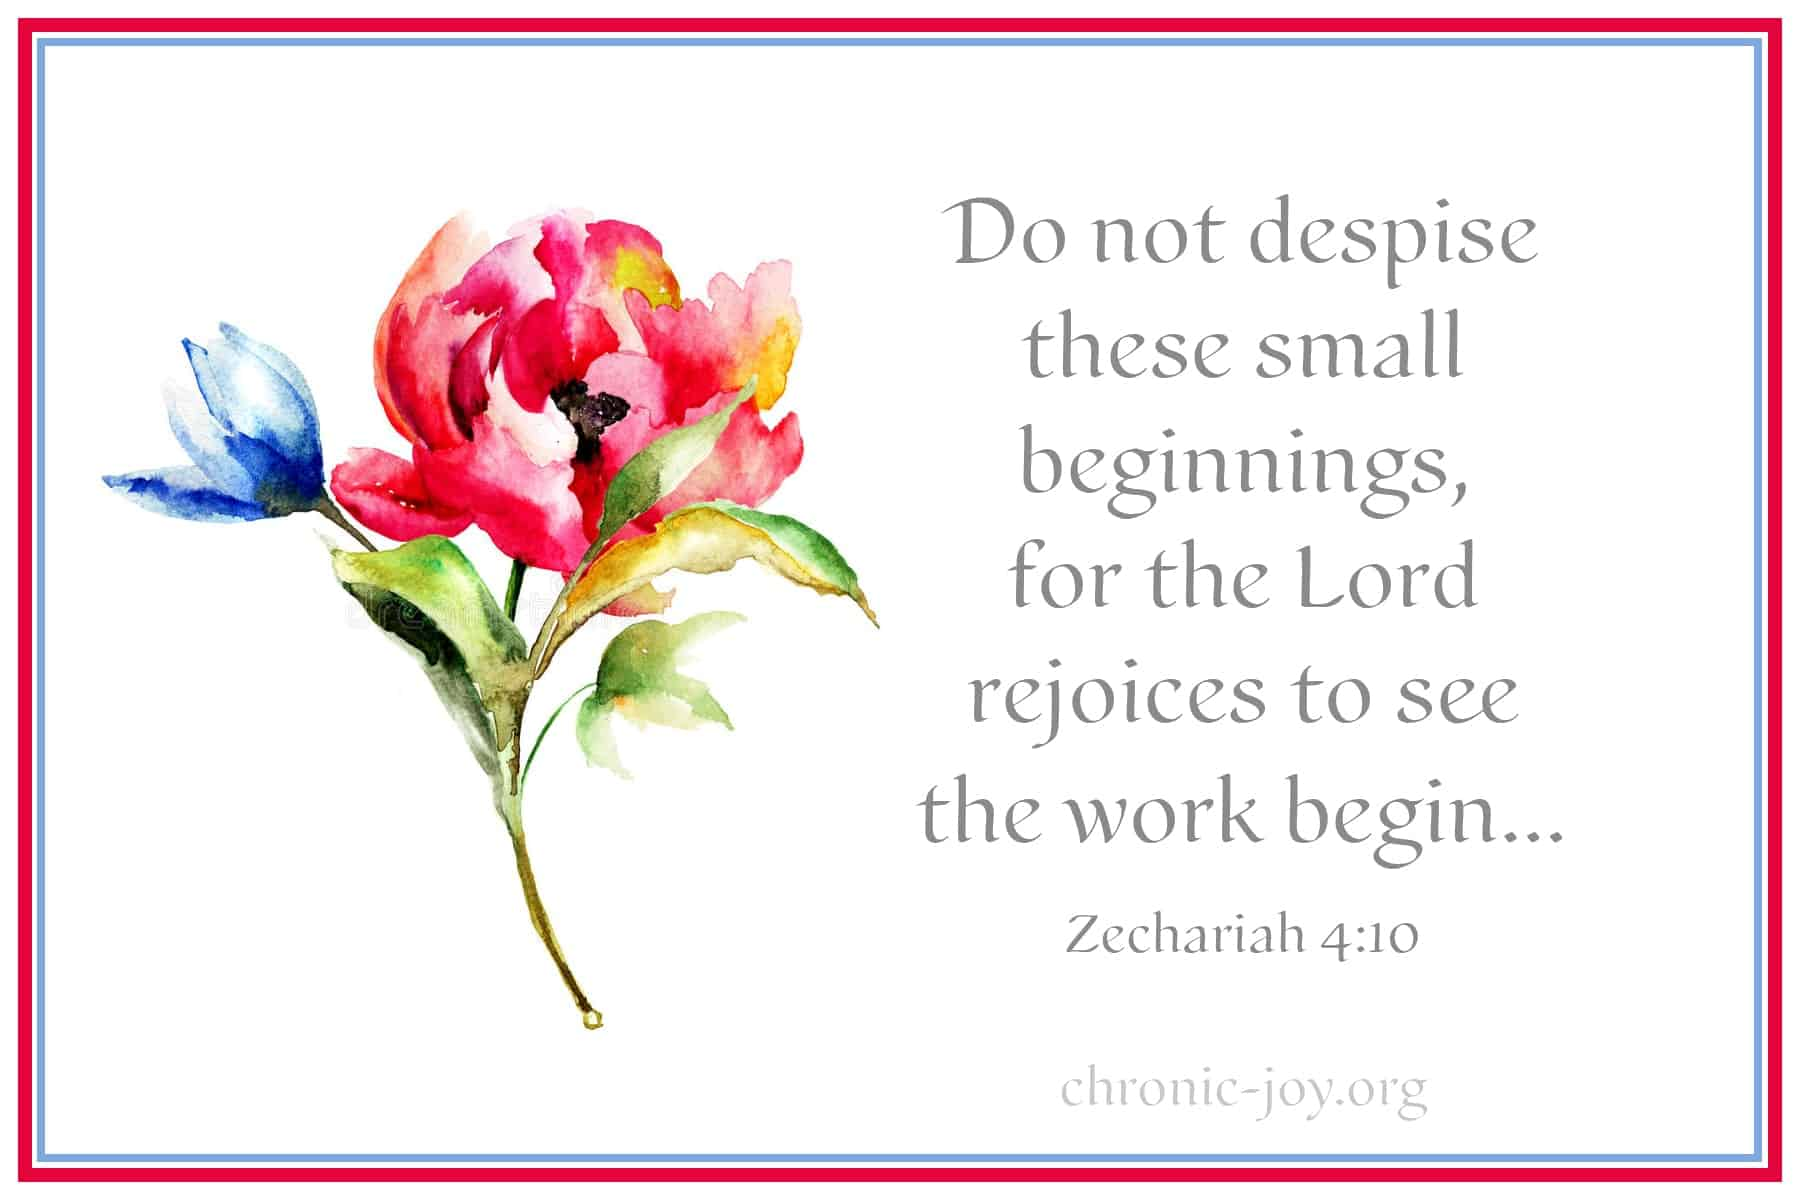 Do not despise these small beginnings...